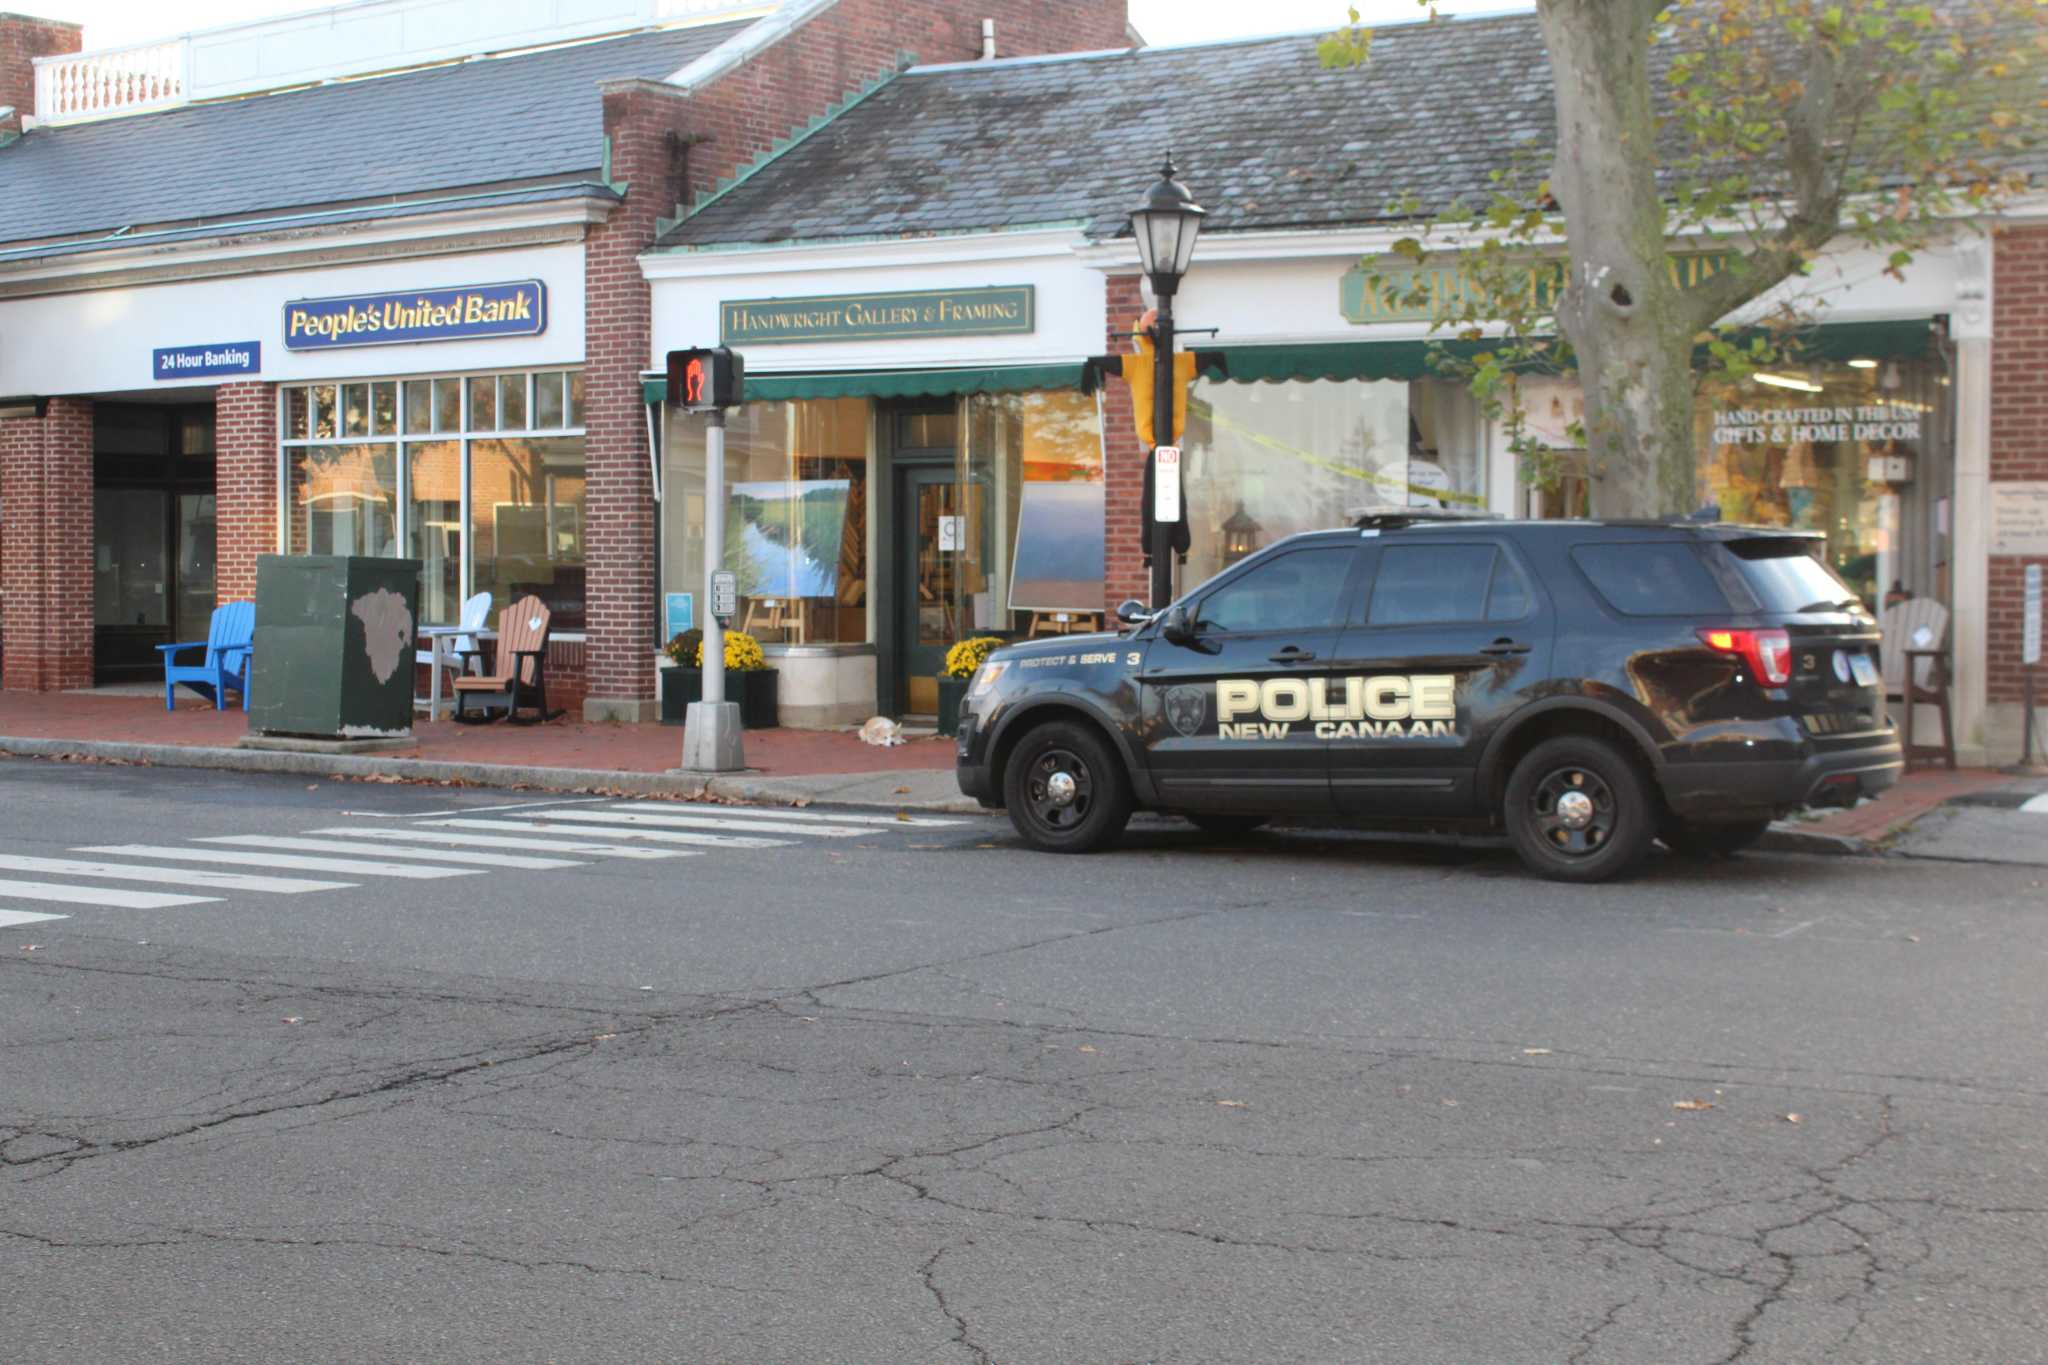 Police probe armed bank robbery in New Canaan